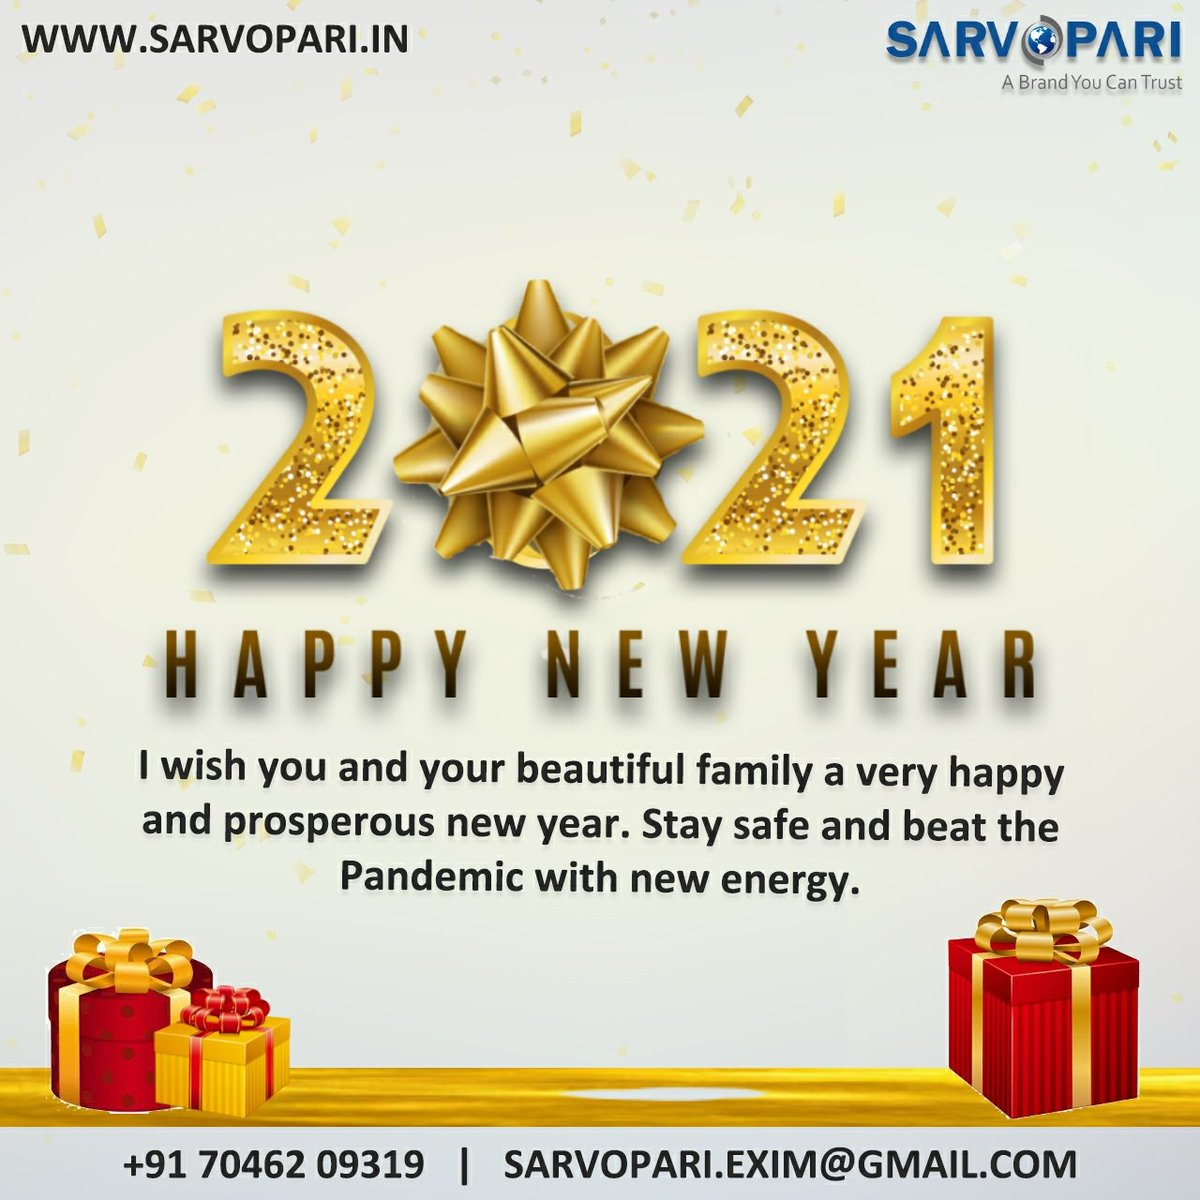 Happy New Year! #2021  Sarvopari Exim Contact: +91 7046209319 Email Id: sarvopari.exim@gmail.com web:   #sarvopariexim #sarvoparigroup #newyear2021 #stayinspired  #togetherforever #stayhome #diwali2020 #newyear #happynewyear #sarvopari #sarvopariexim